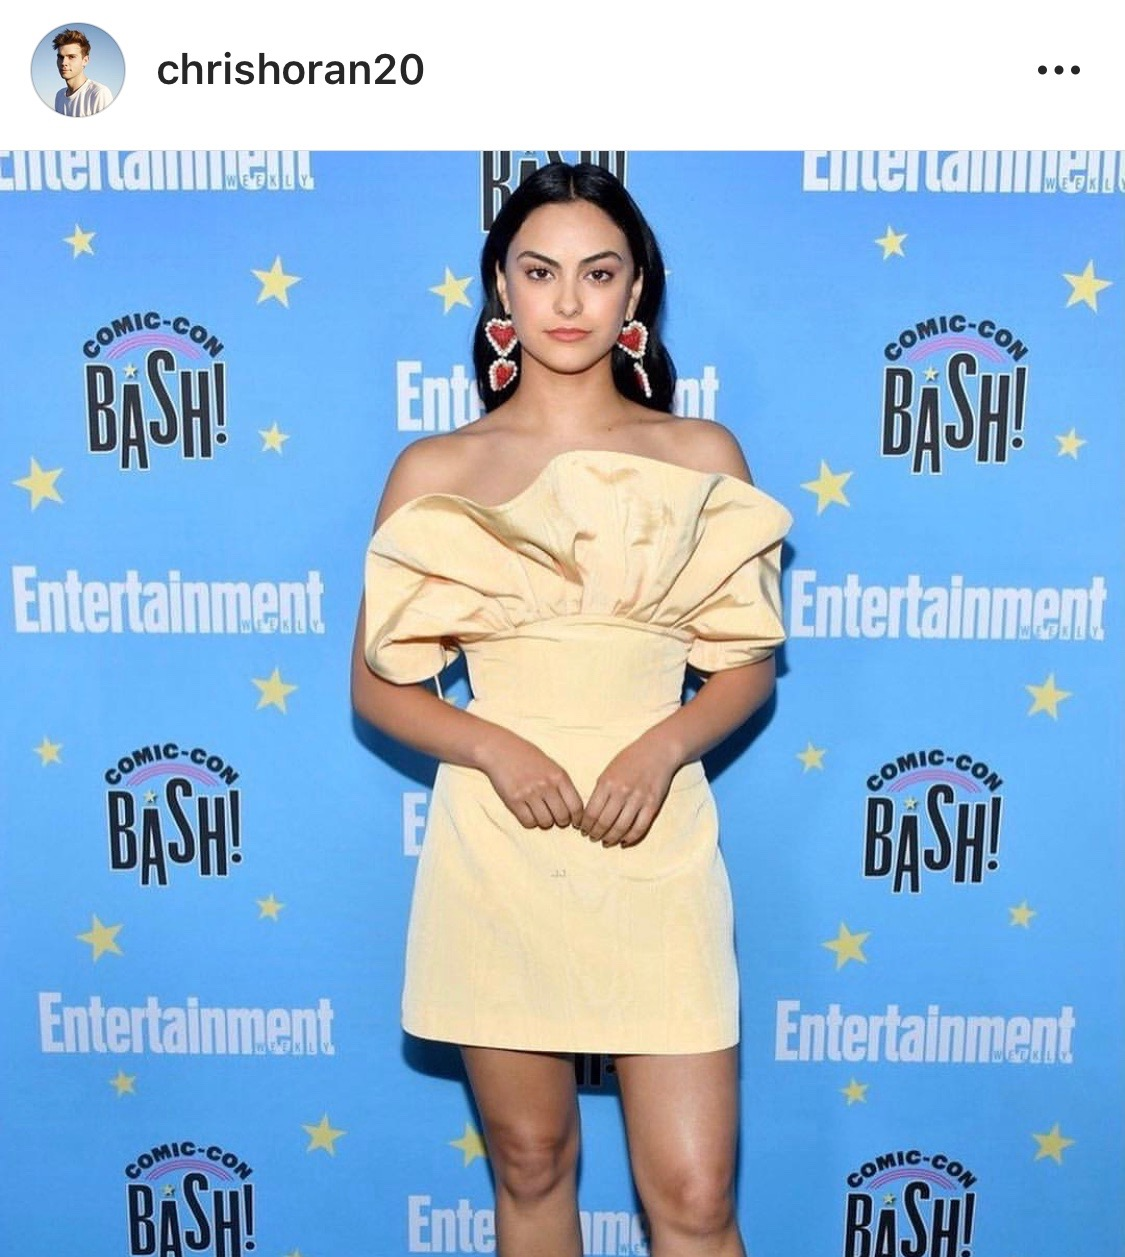 Camila-Mendes-in-Markarian-at-comic-con-in-los-angeles.jpeg